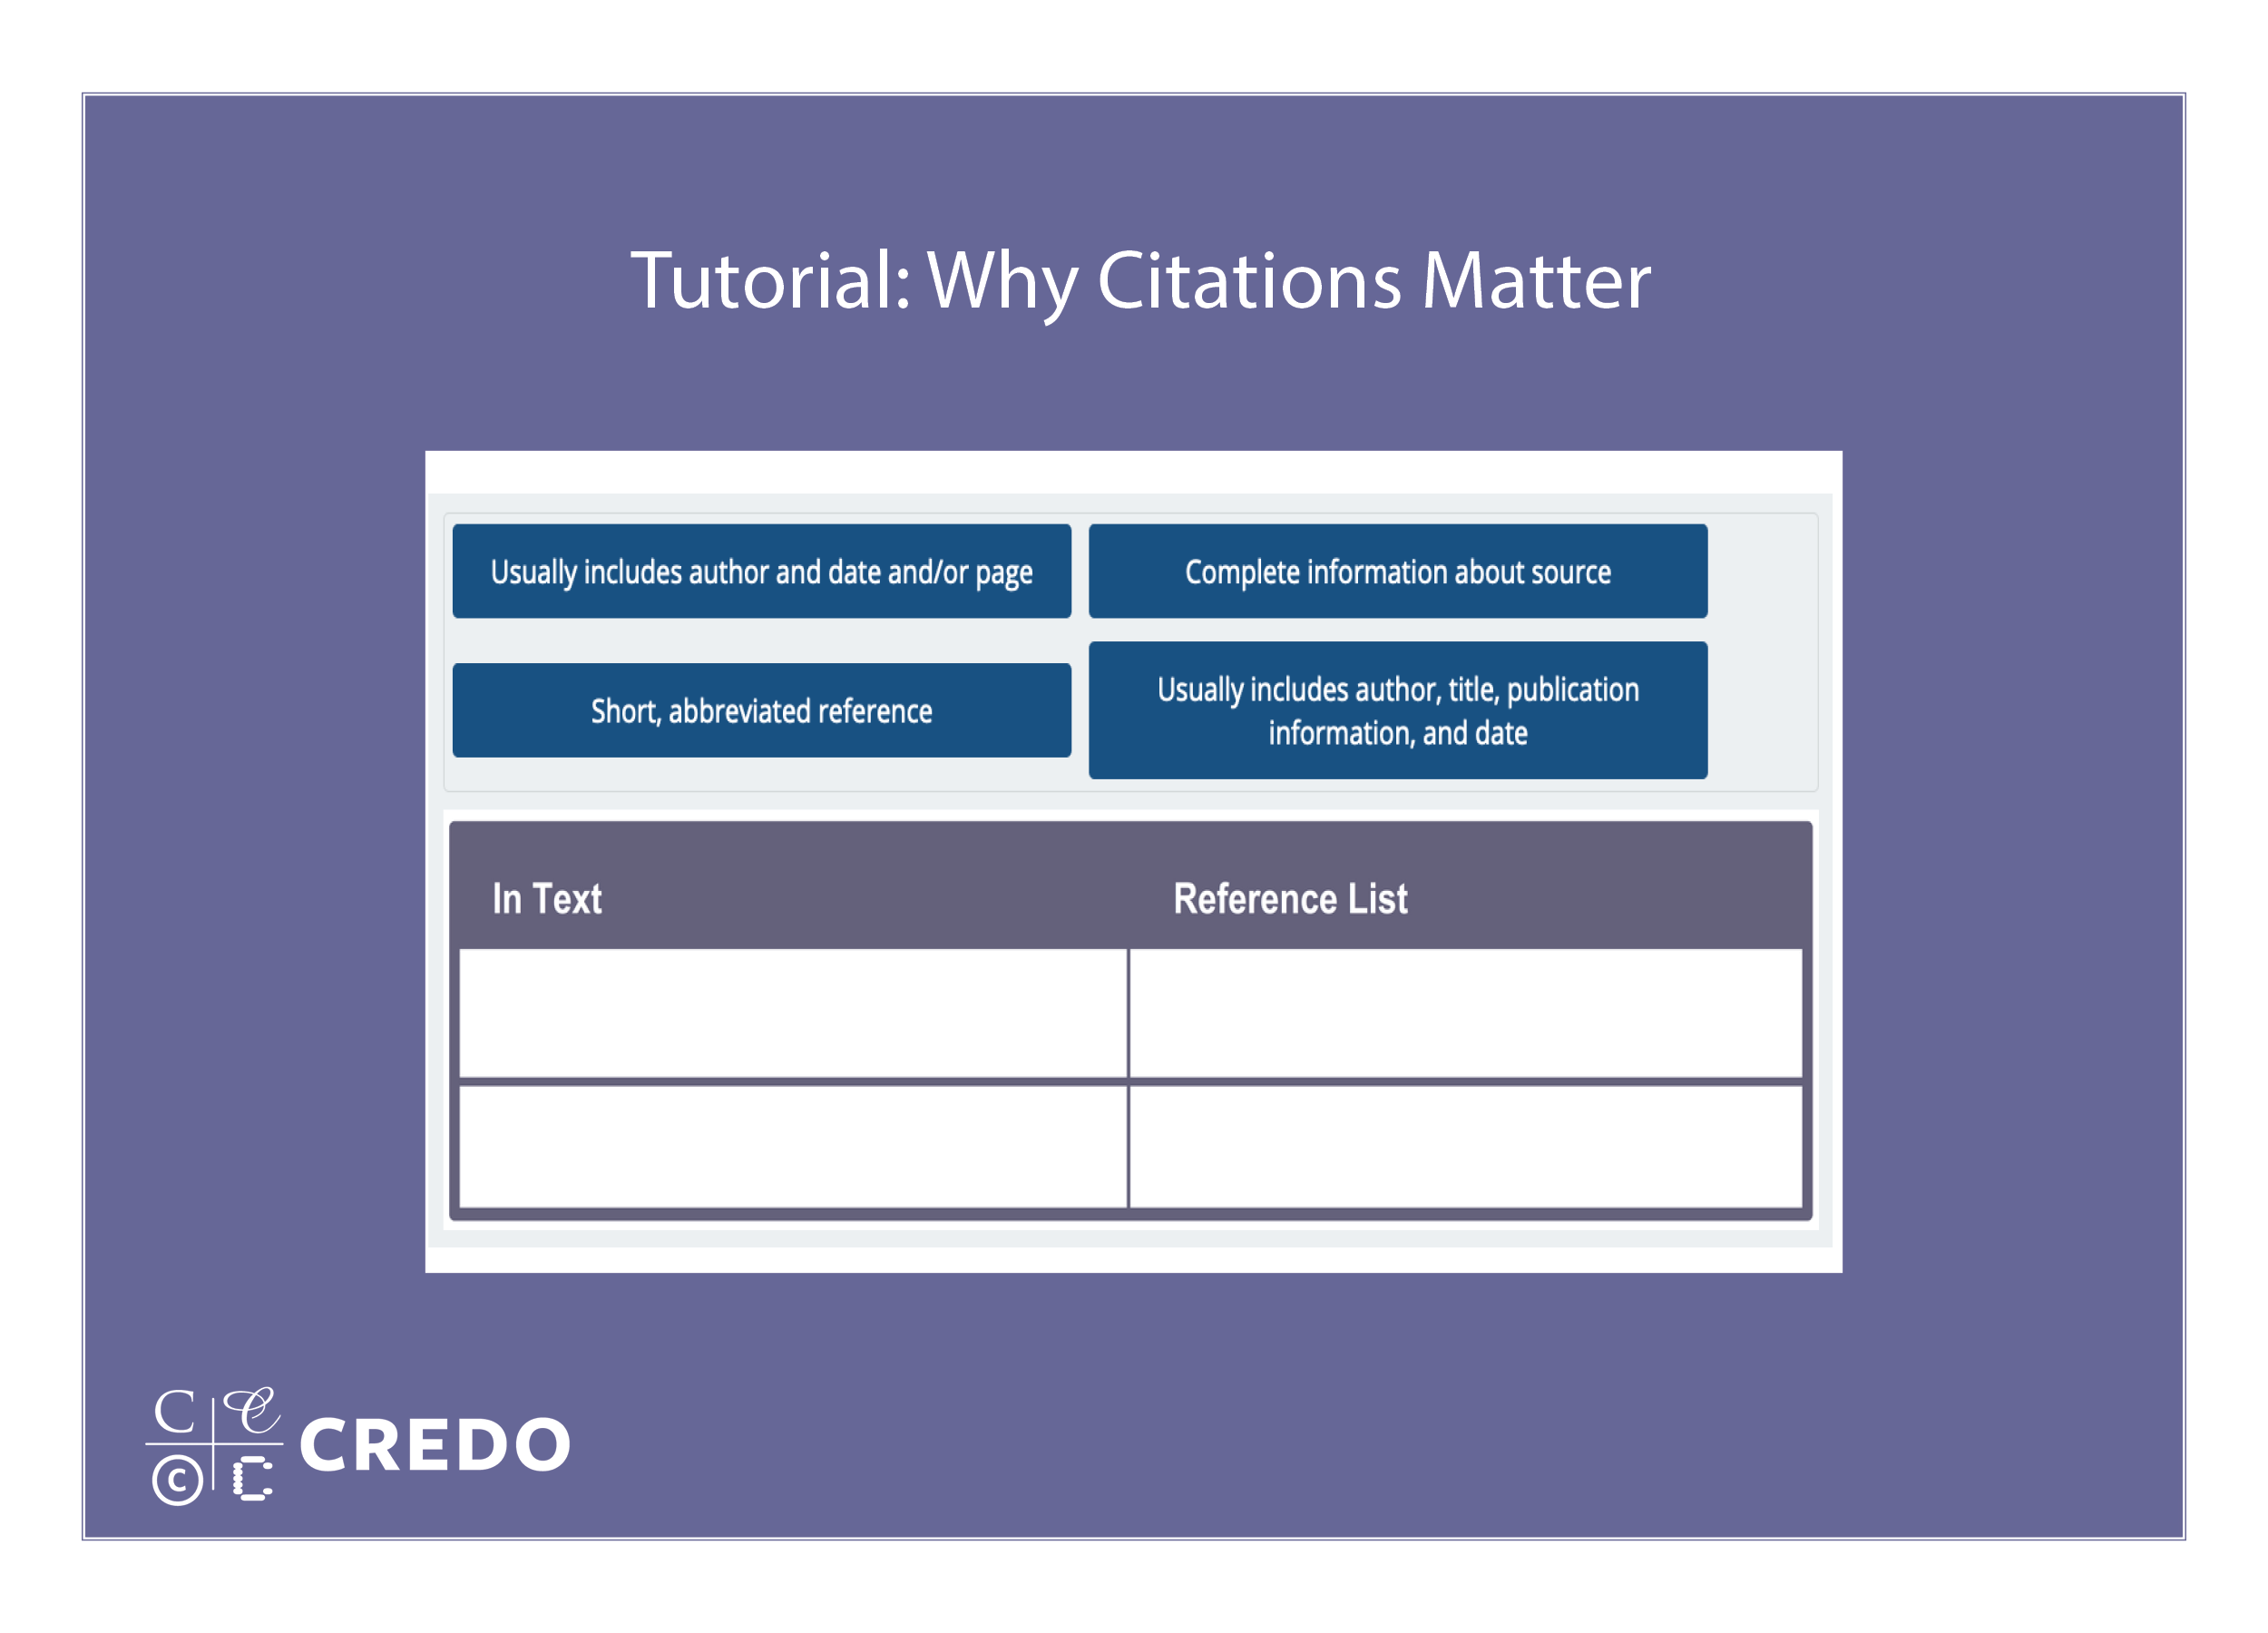 Why Citations Matter Video